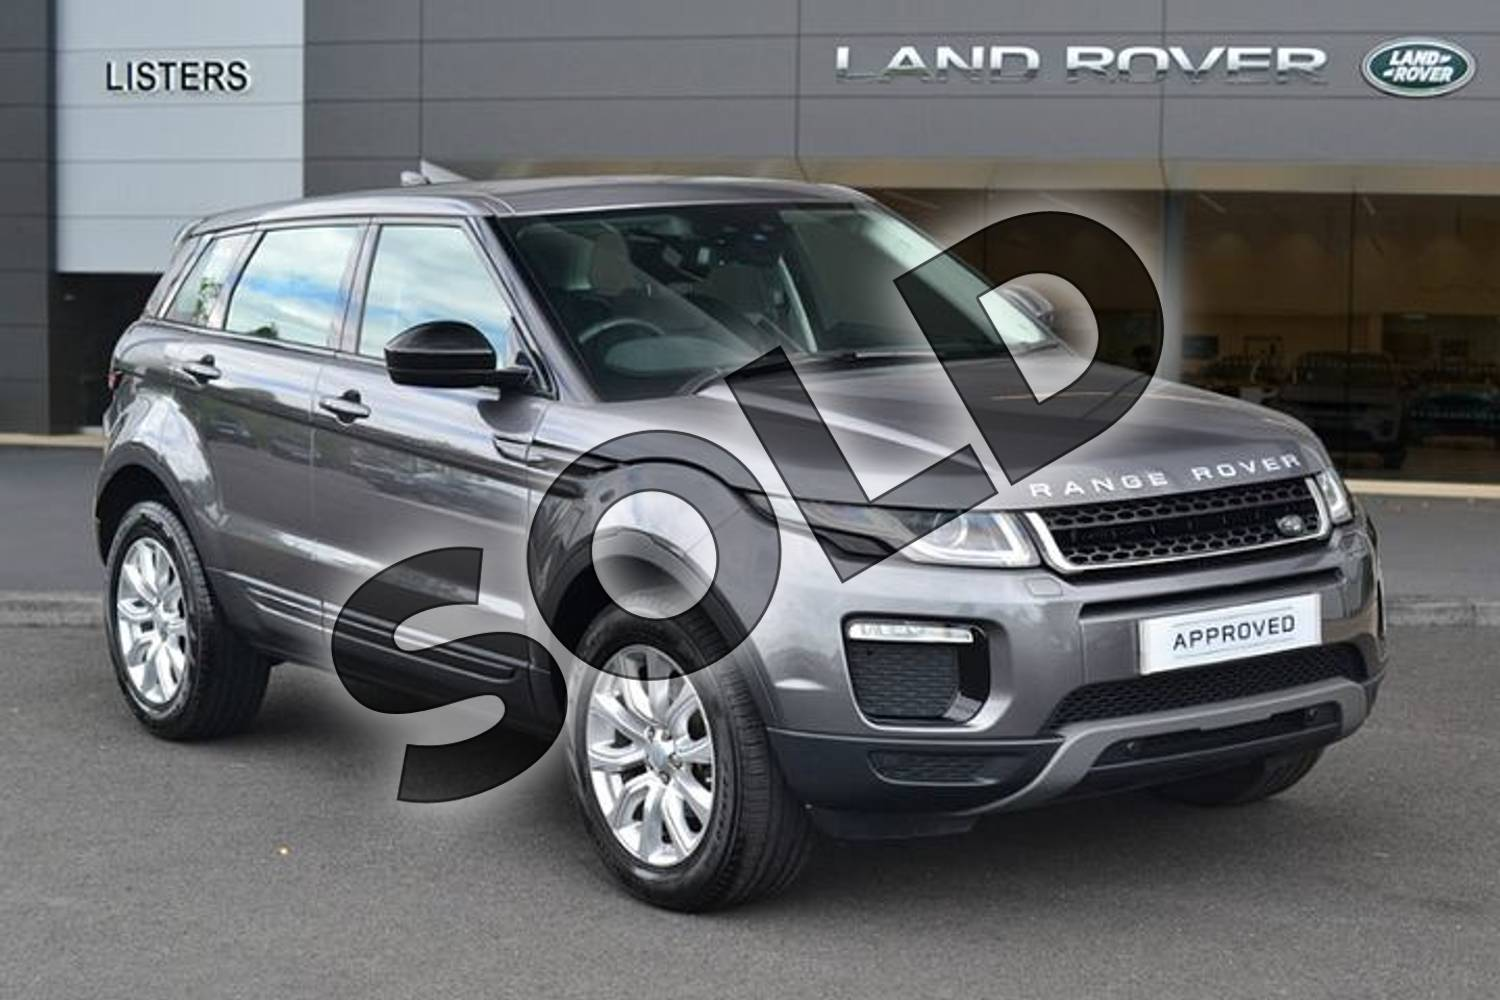 2017 Range Rover Evoque Diesel Hatchback Diesel 2.0 eD4 SE Tech 5dr 2WD in Corris Grey at Listers Land Rover Hereford